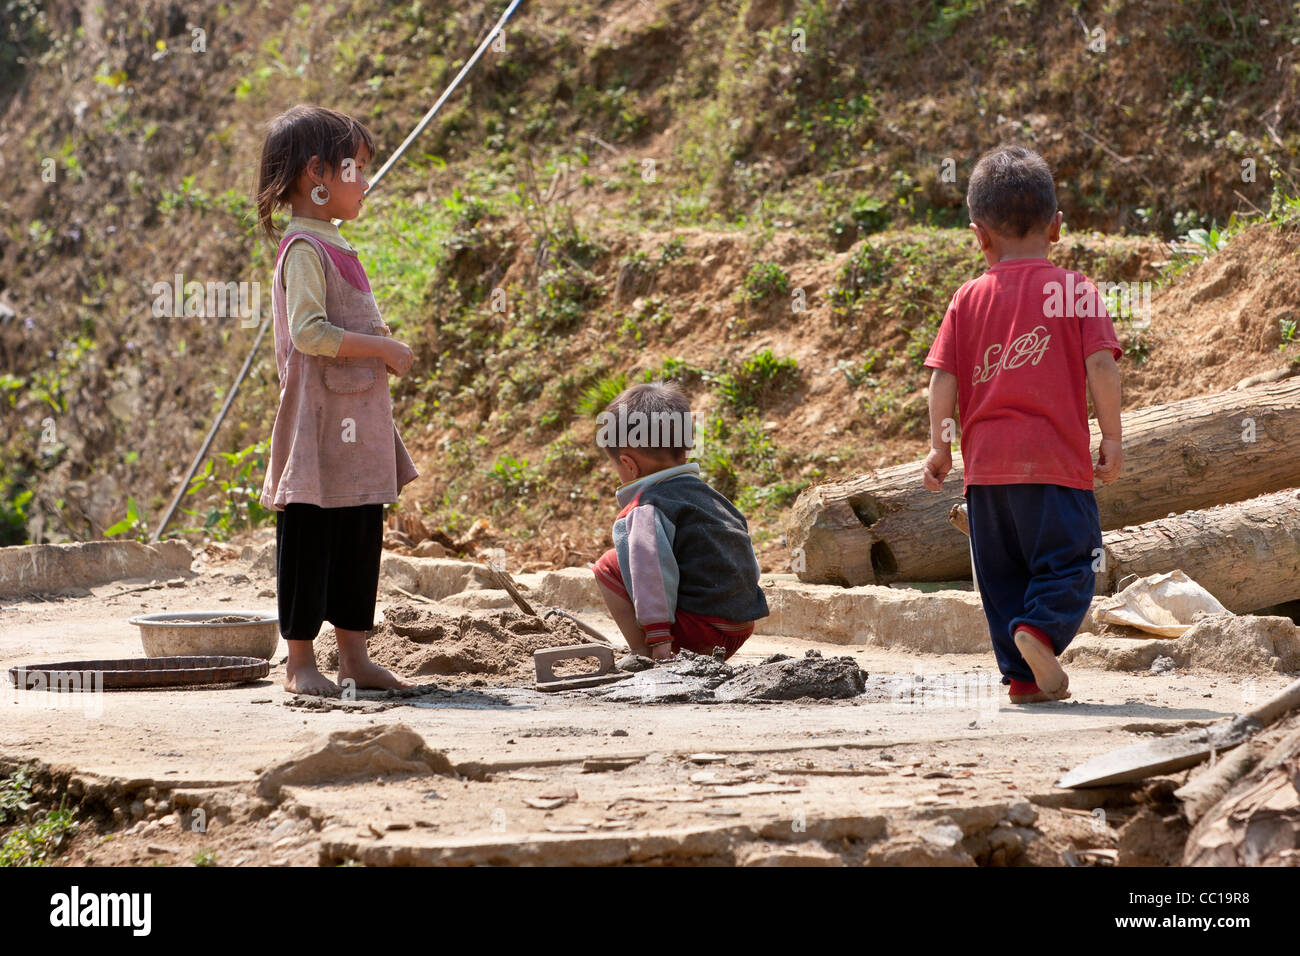 Three children in a Vietnamese village near Sapa who appear to be mixing cement - Stock Image